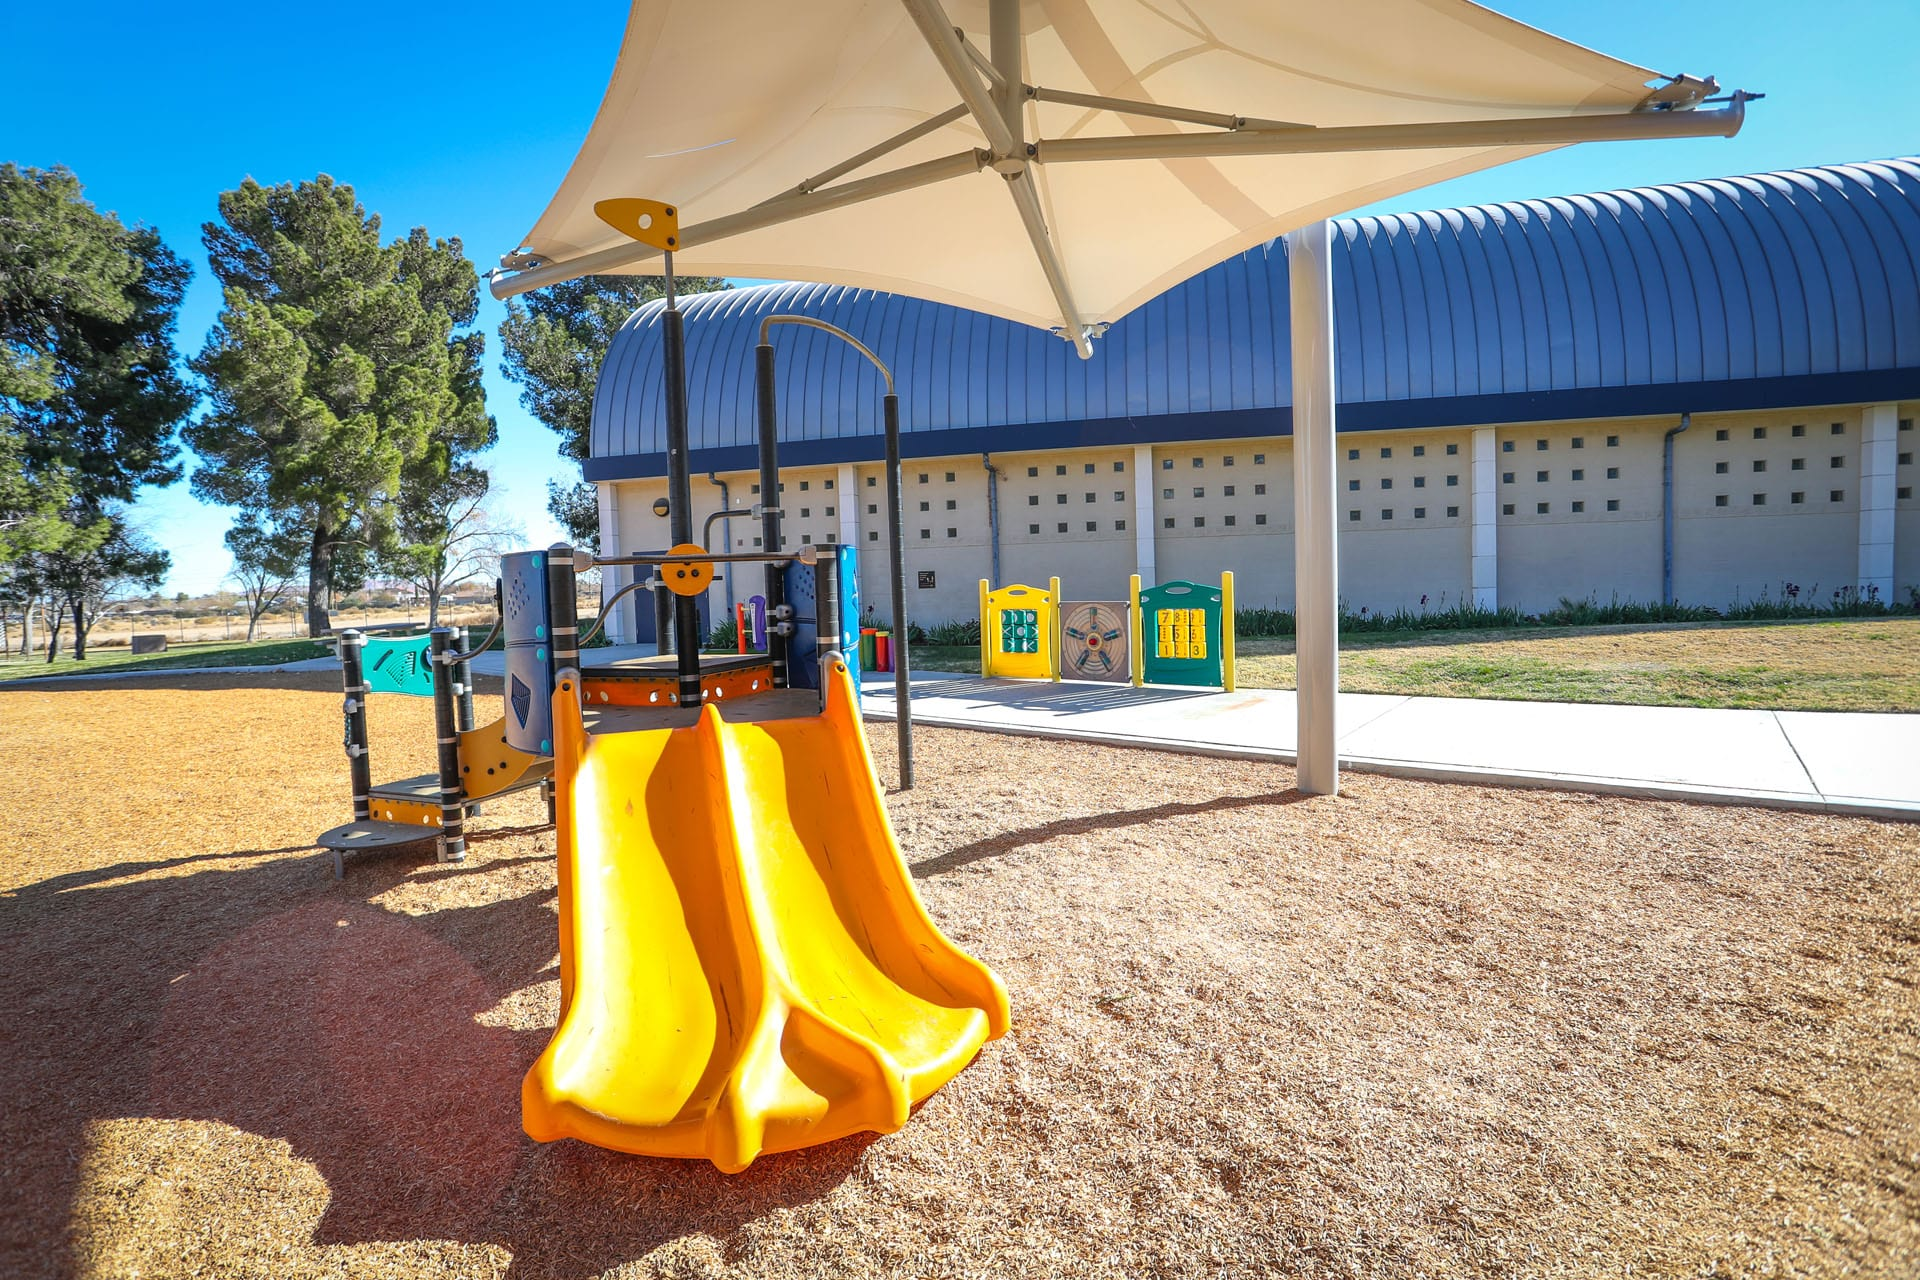 Playground and building